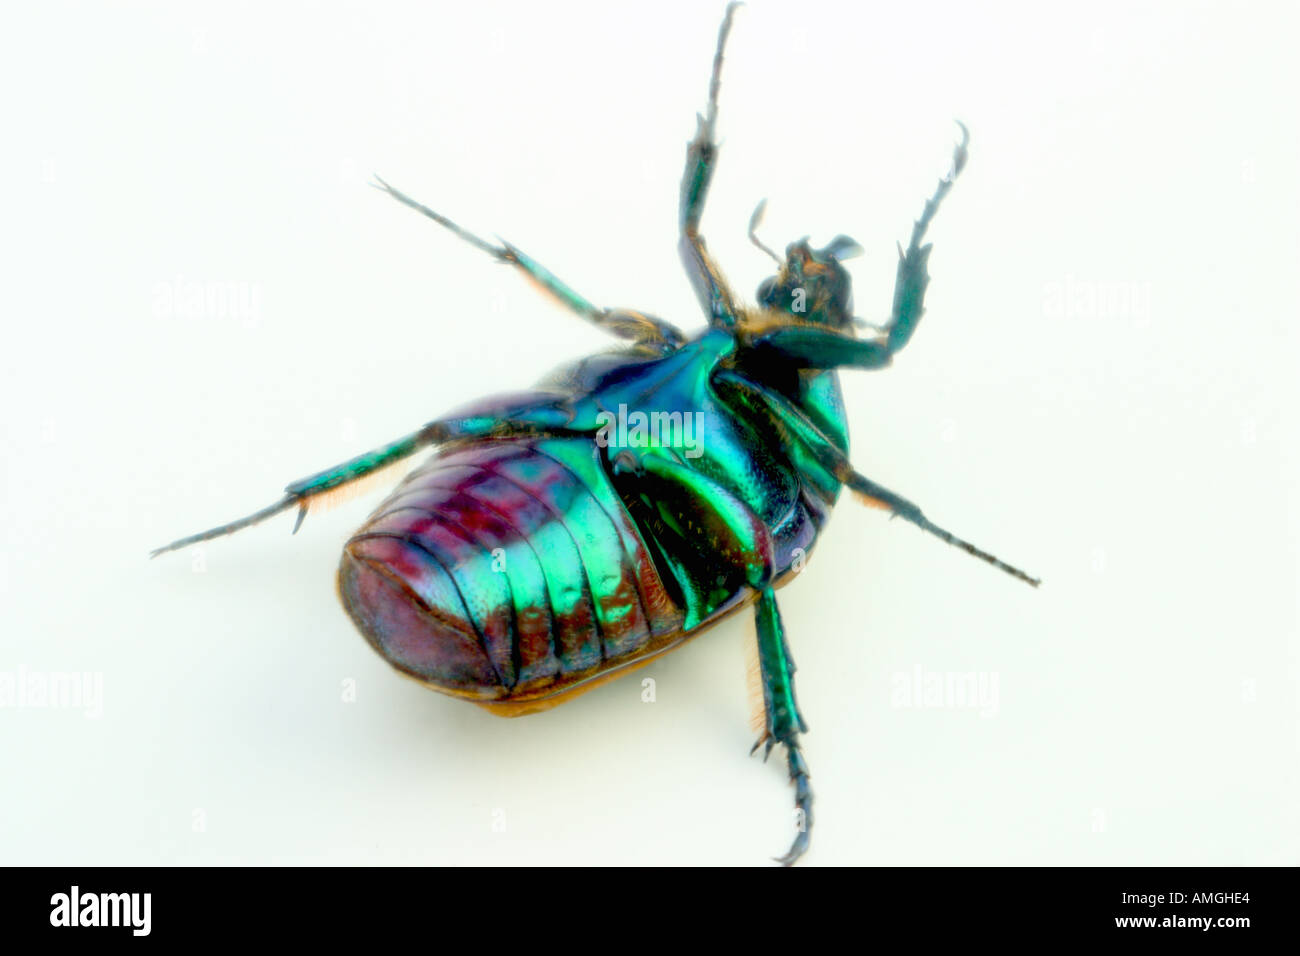 Fig Beetle Stock Photos & Fig Beetle Stock Images - Alamy